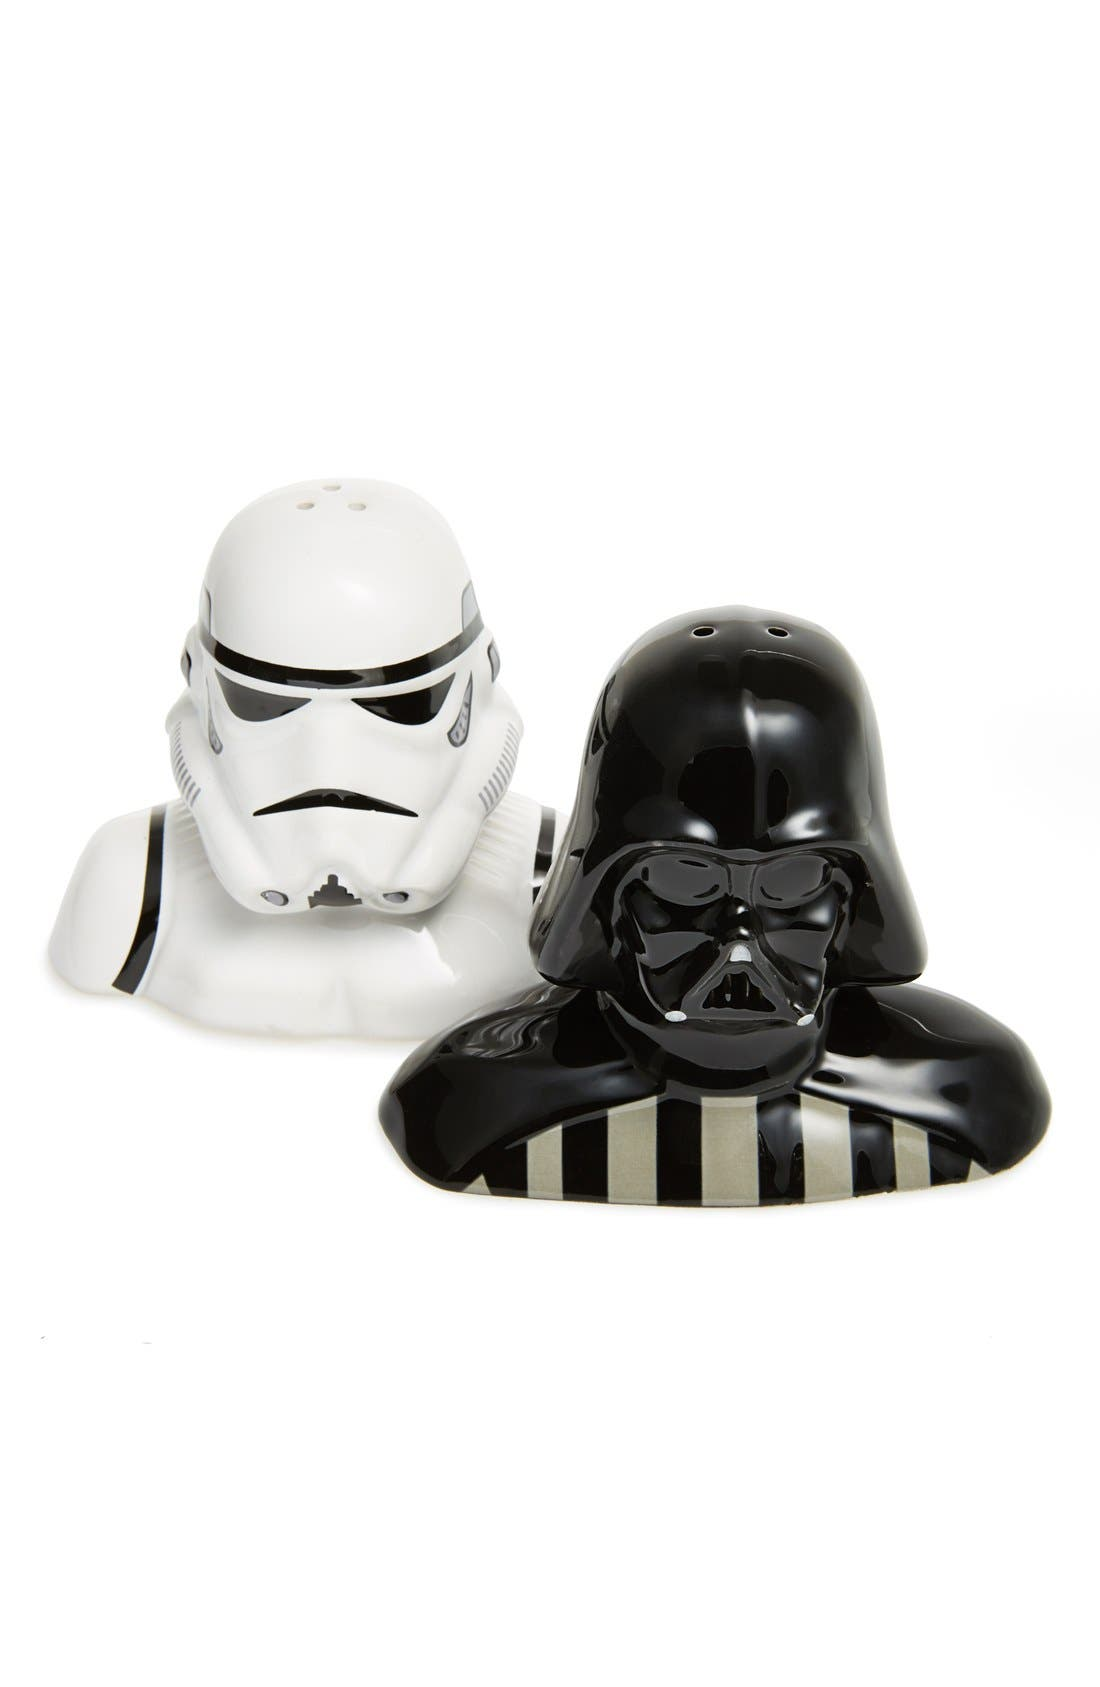 Main Image - Vandor Star Wars Salt & Pepper Shakers